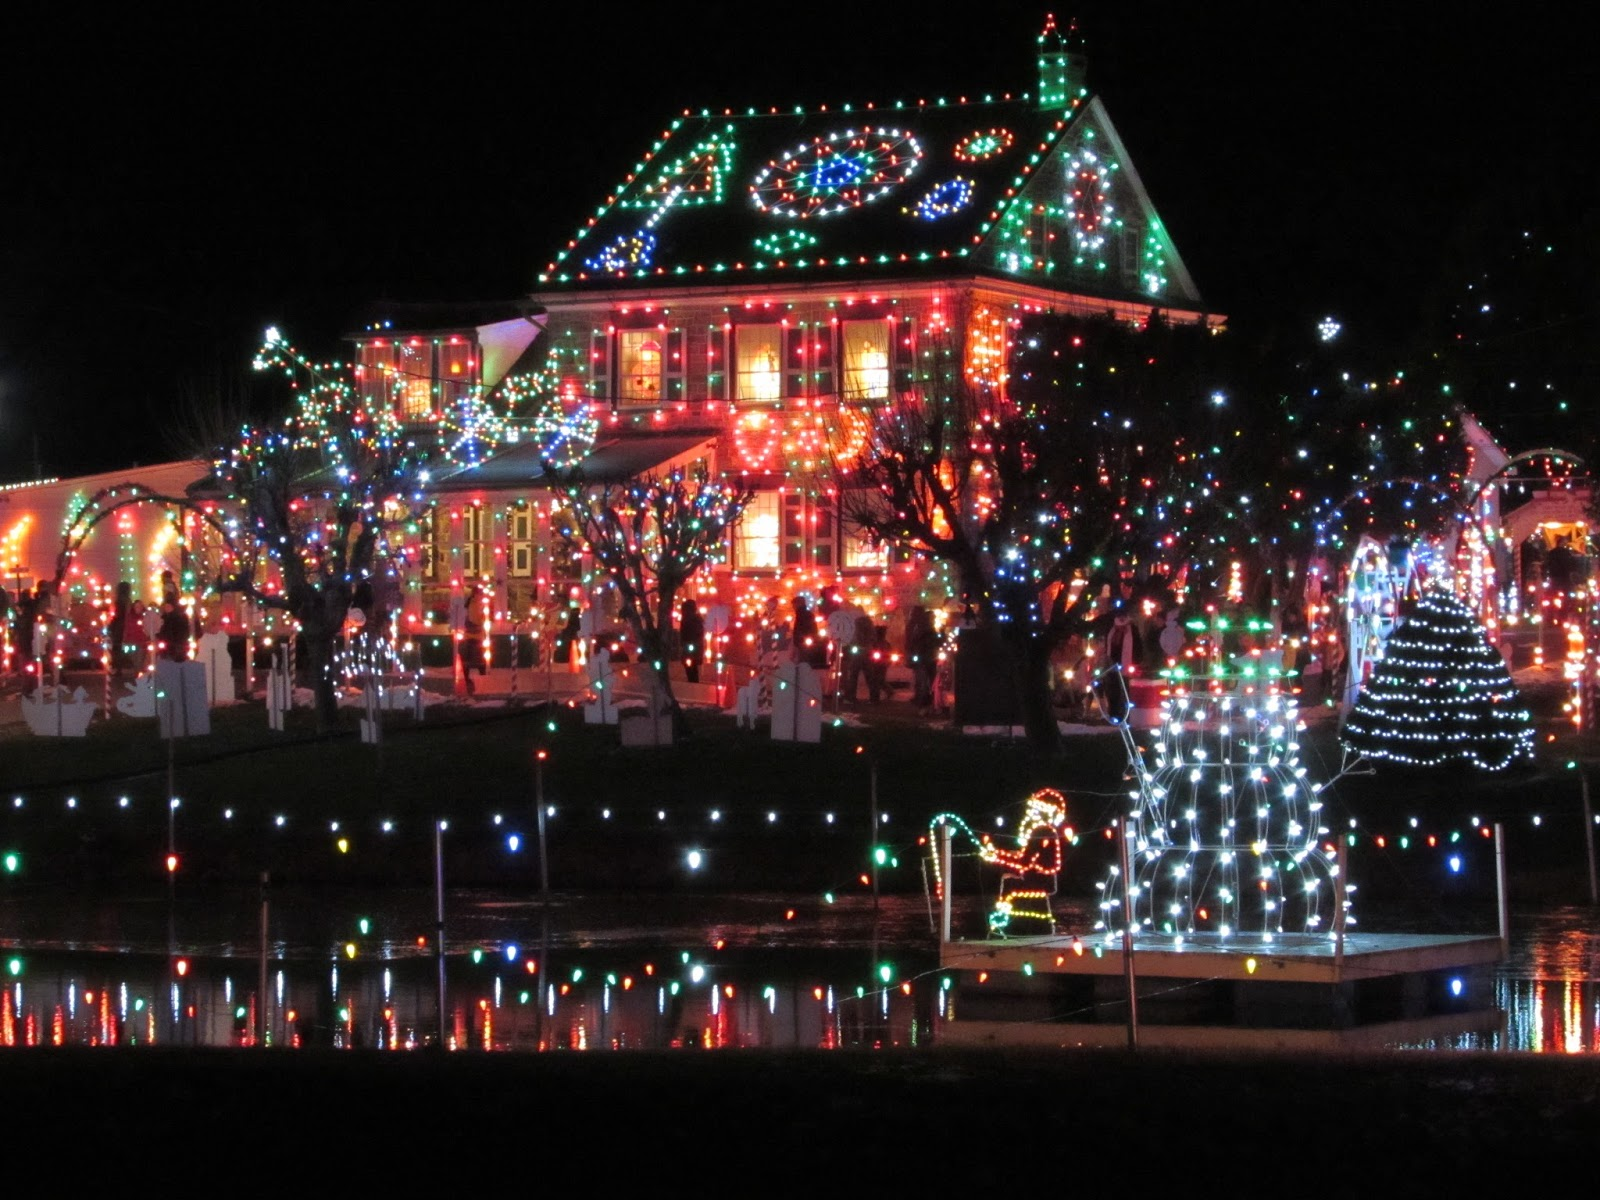 koziars christmas village is located in bernville pa just south of interstate 78 in berks county this is a special place where family memories are made